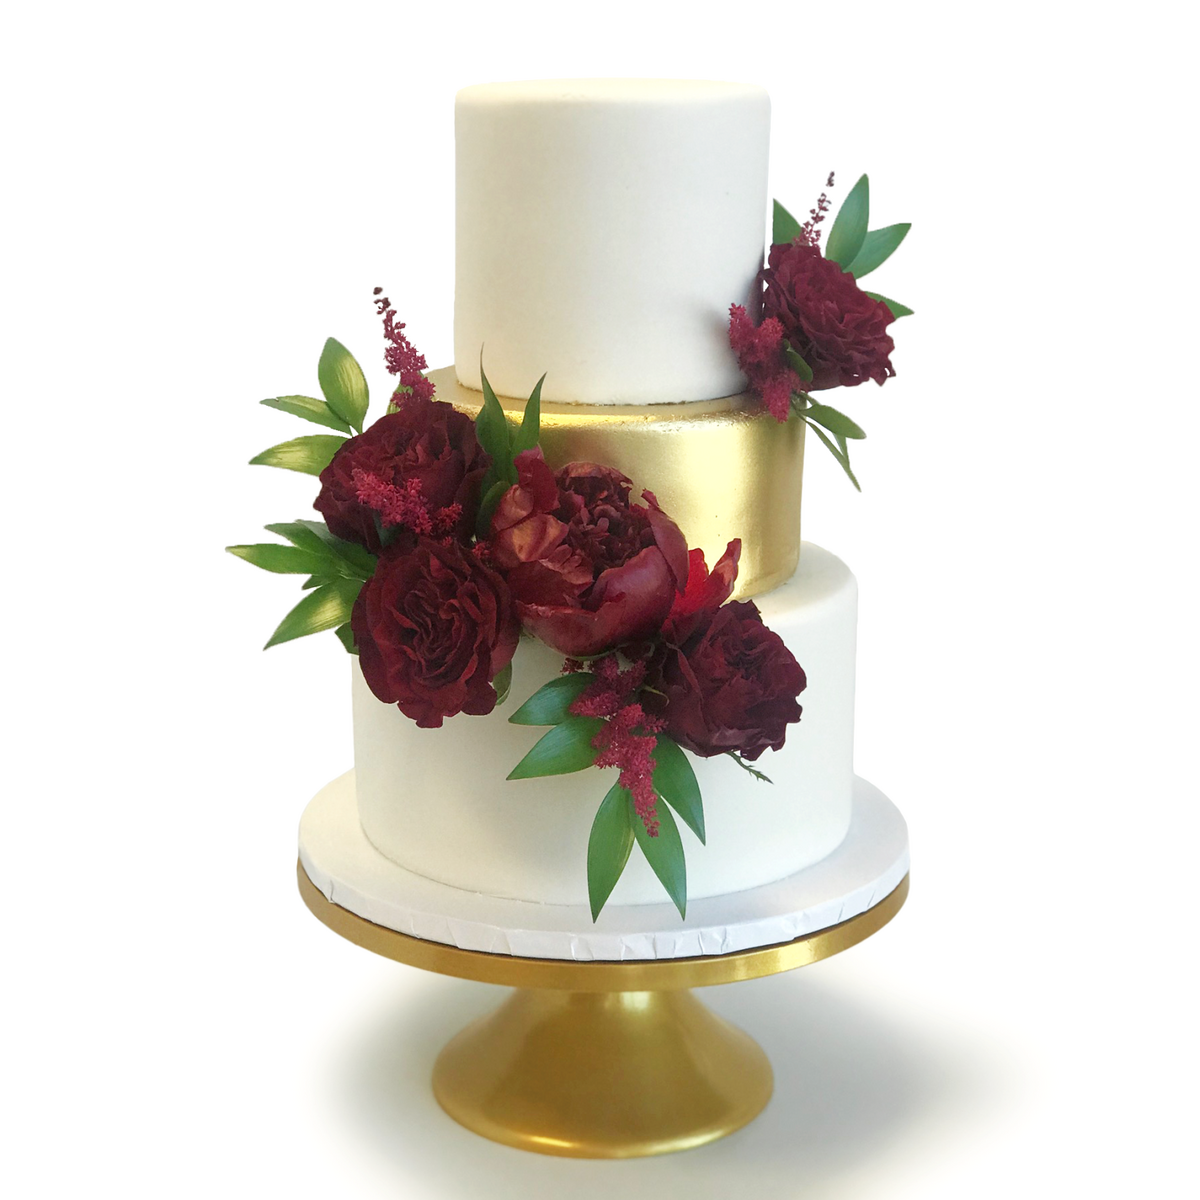 Whippt Kitchen - Wedding Cake gold and burgundy 2